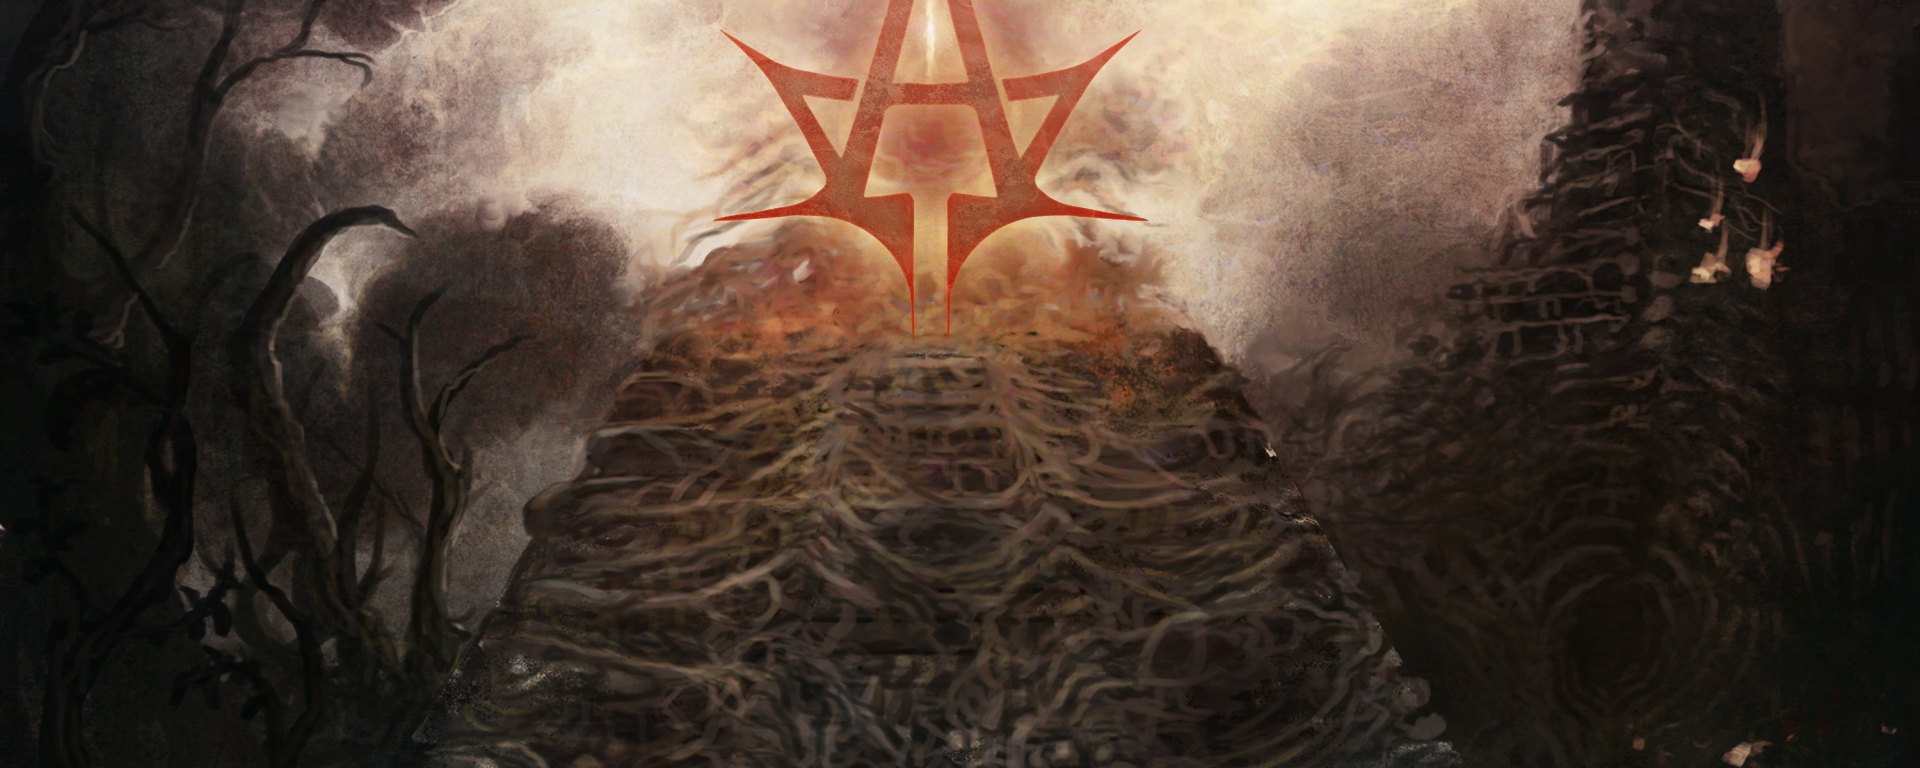 allegaeon proponent for sentience review